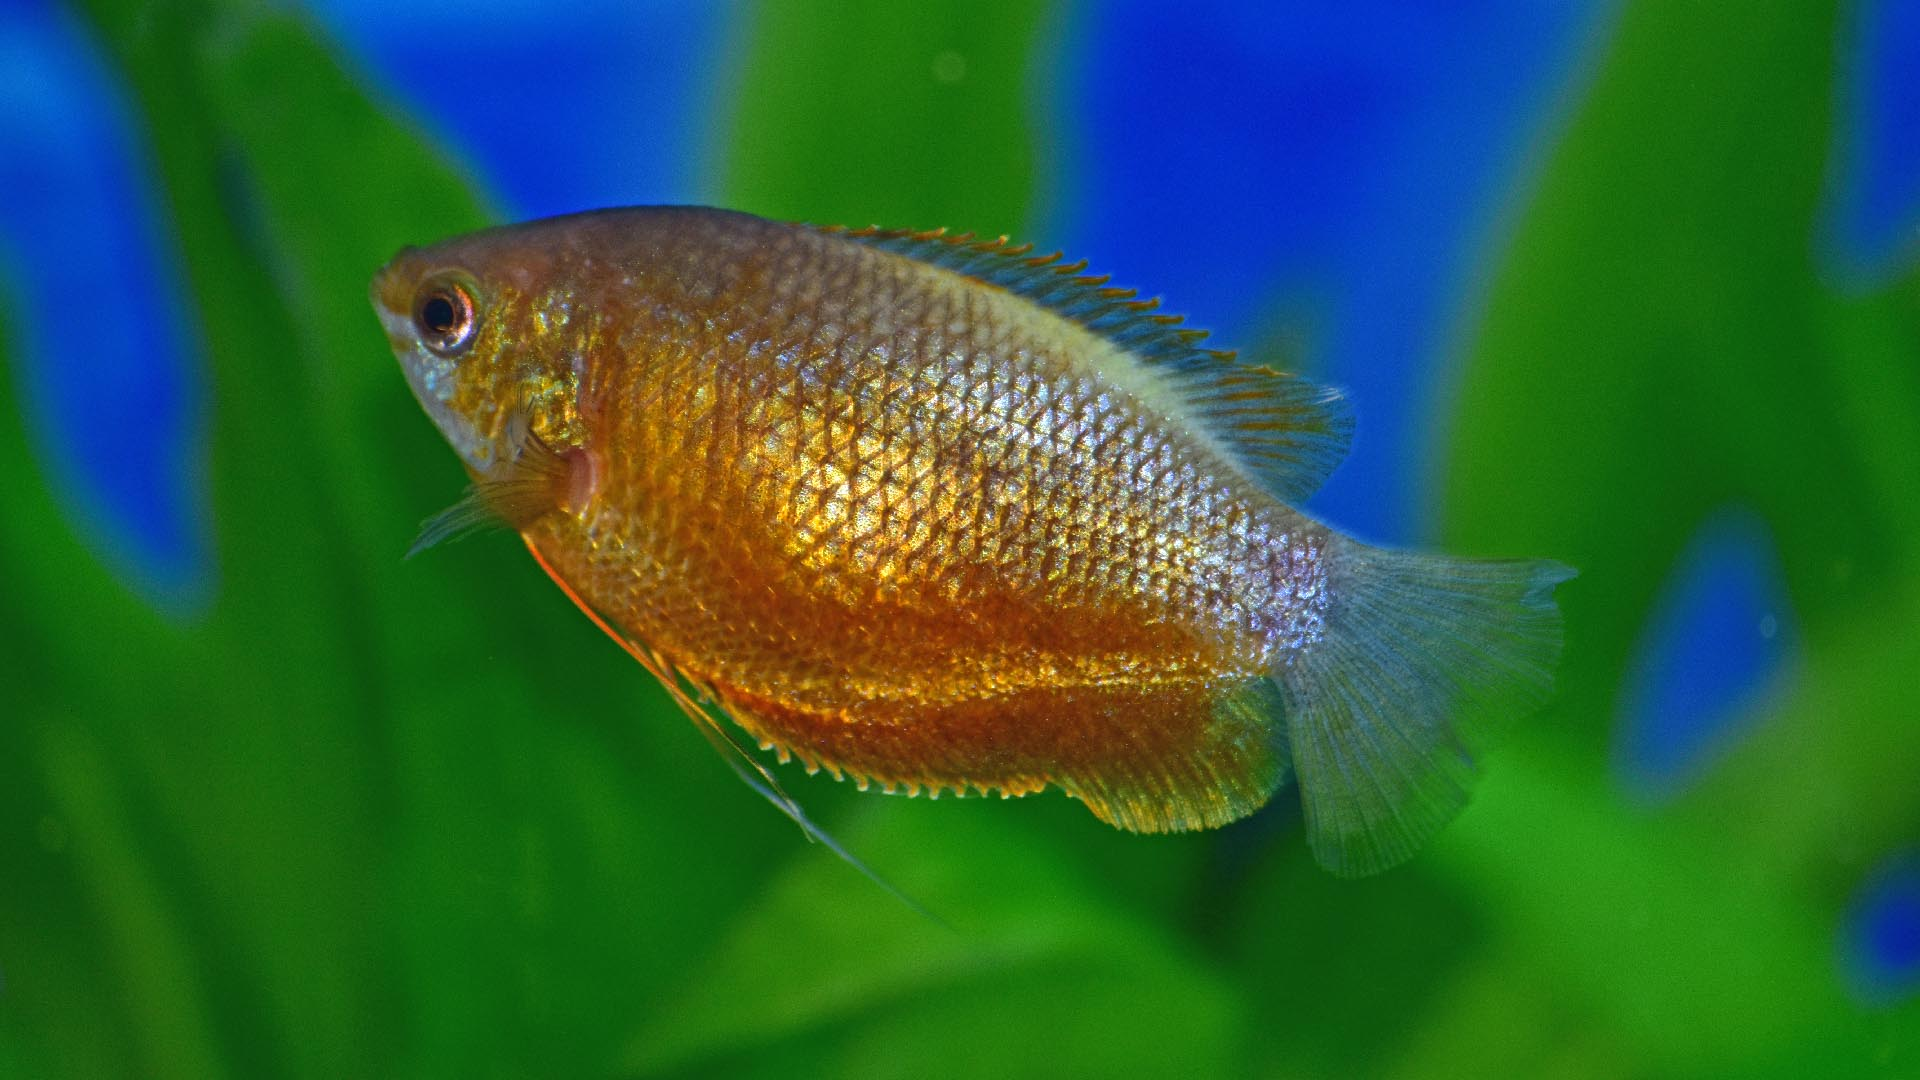 Gouramis, or gouramies, are a group of freshwater anabantiform fishes that comprise the family Osphronemidae.